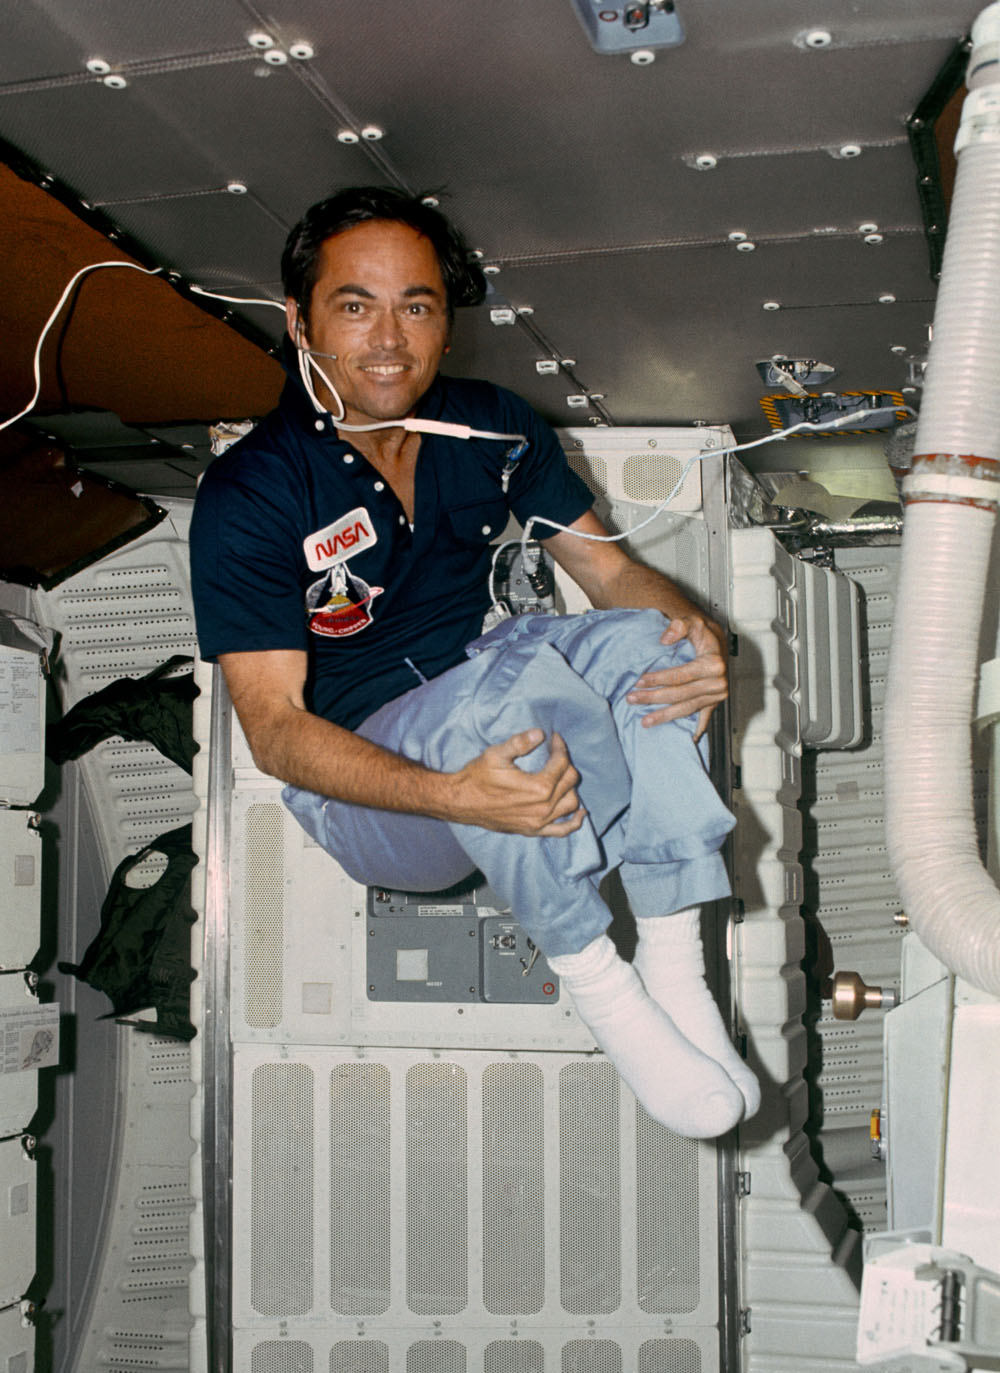 Astronaut Robert L. Crippen, pilot for STS-1 takes advantage of zero-gravity to do some rare acrobatics on the middeck of the space shuttle Columbia in Earth orbit during the two-day mission between April 12 and April 14 in 1981.